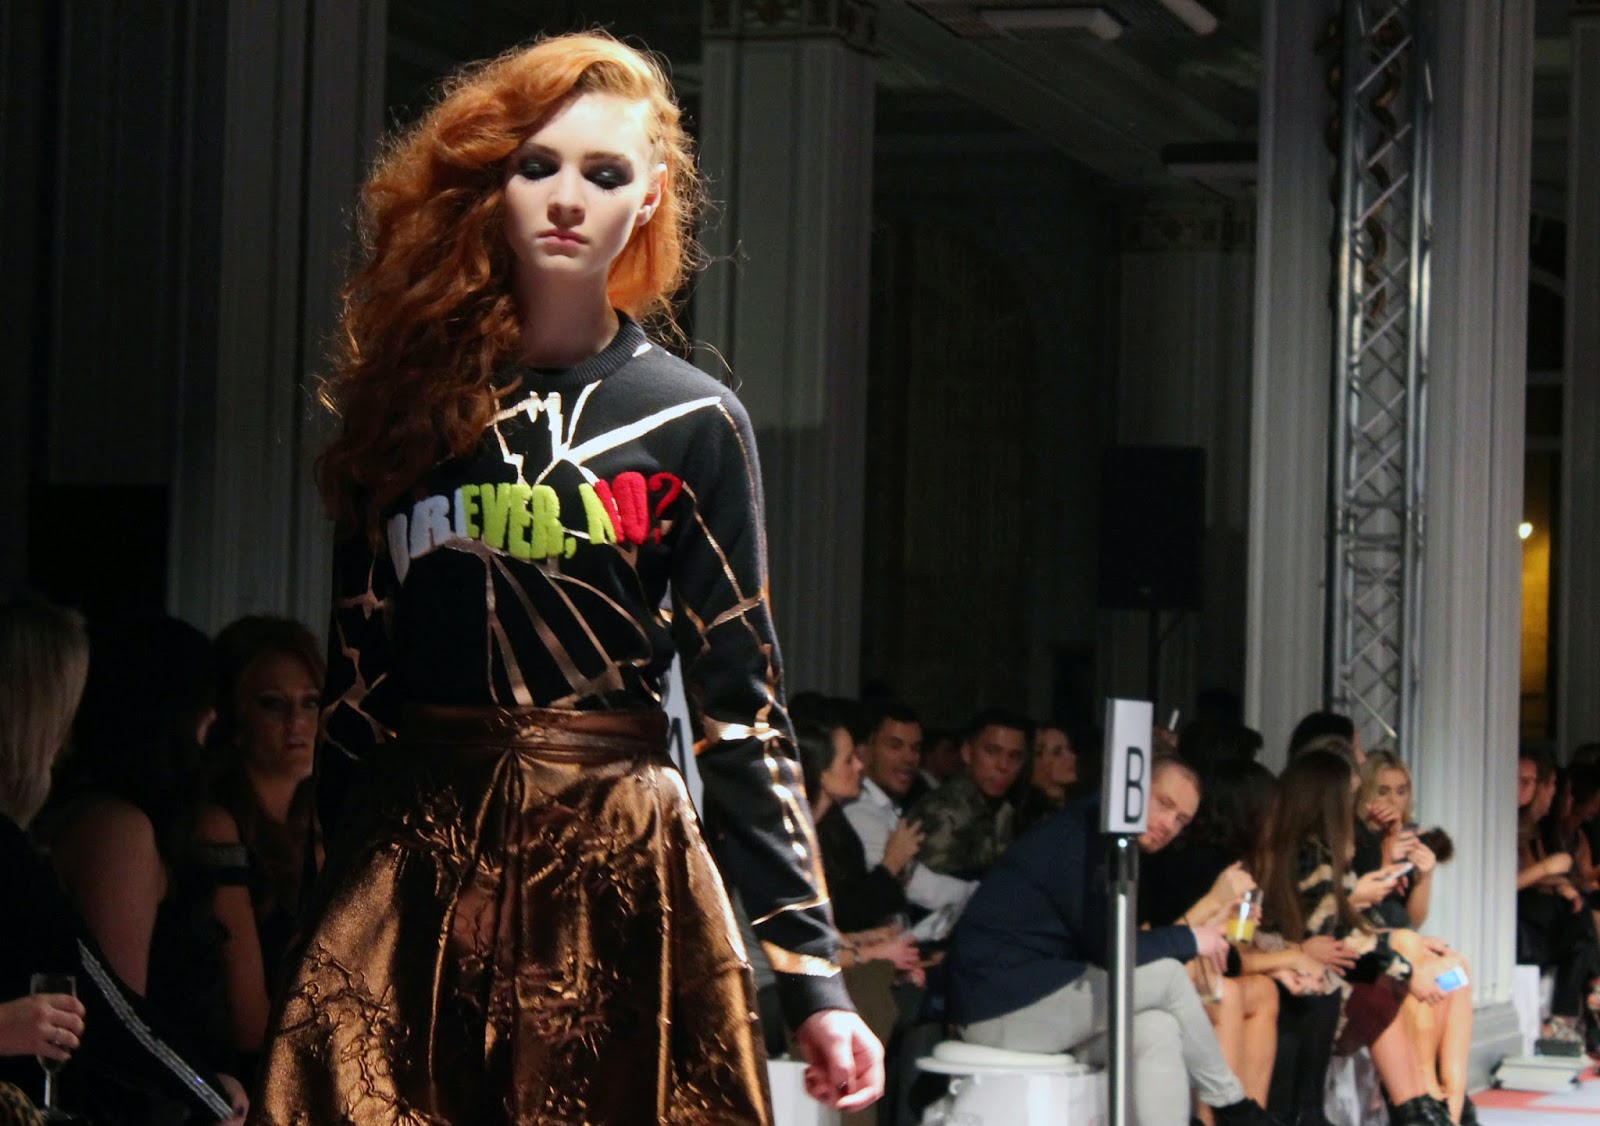 kenzo forever, no? sweatshirt at cricket fashion show liverpool celebration of style